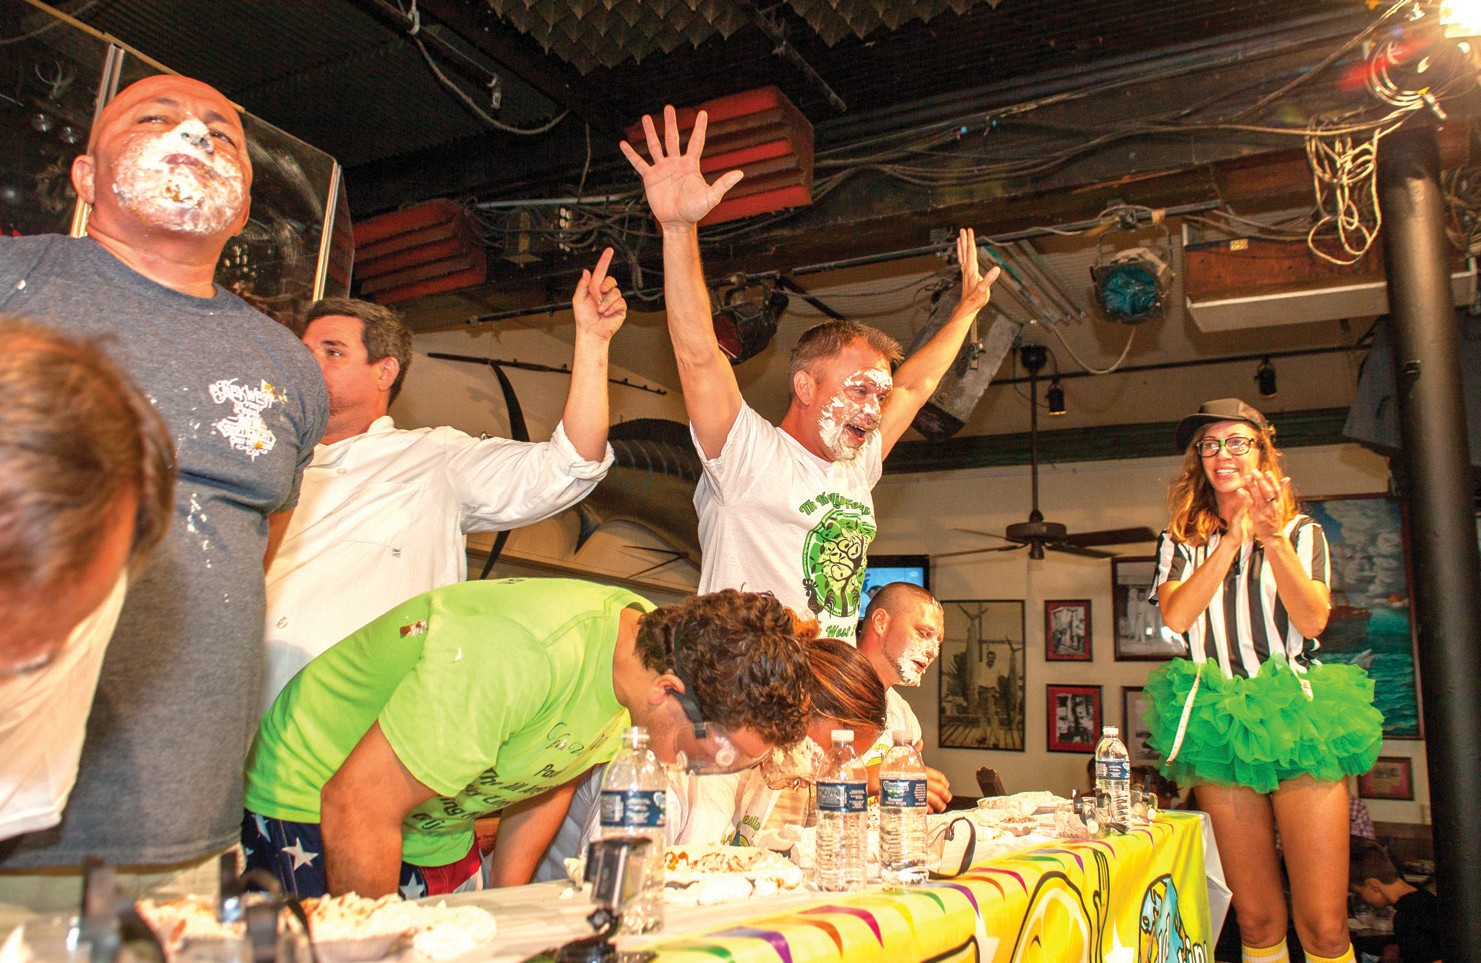 The competition is pretty fierce at the pie-eating challenge at the Key Lime Festival.